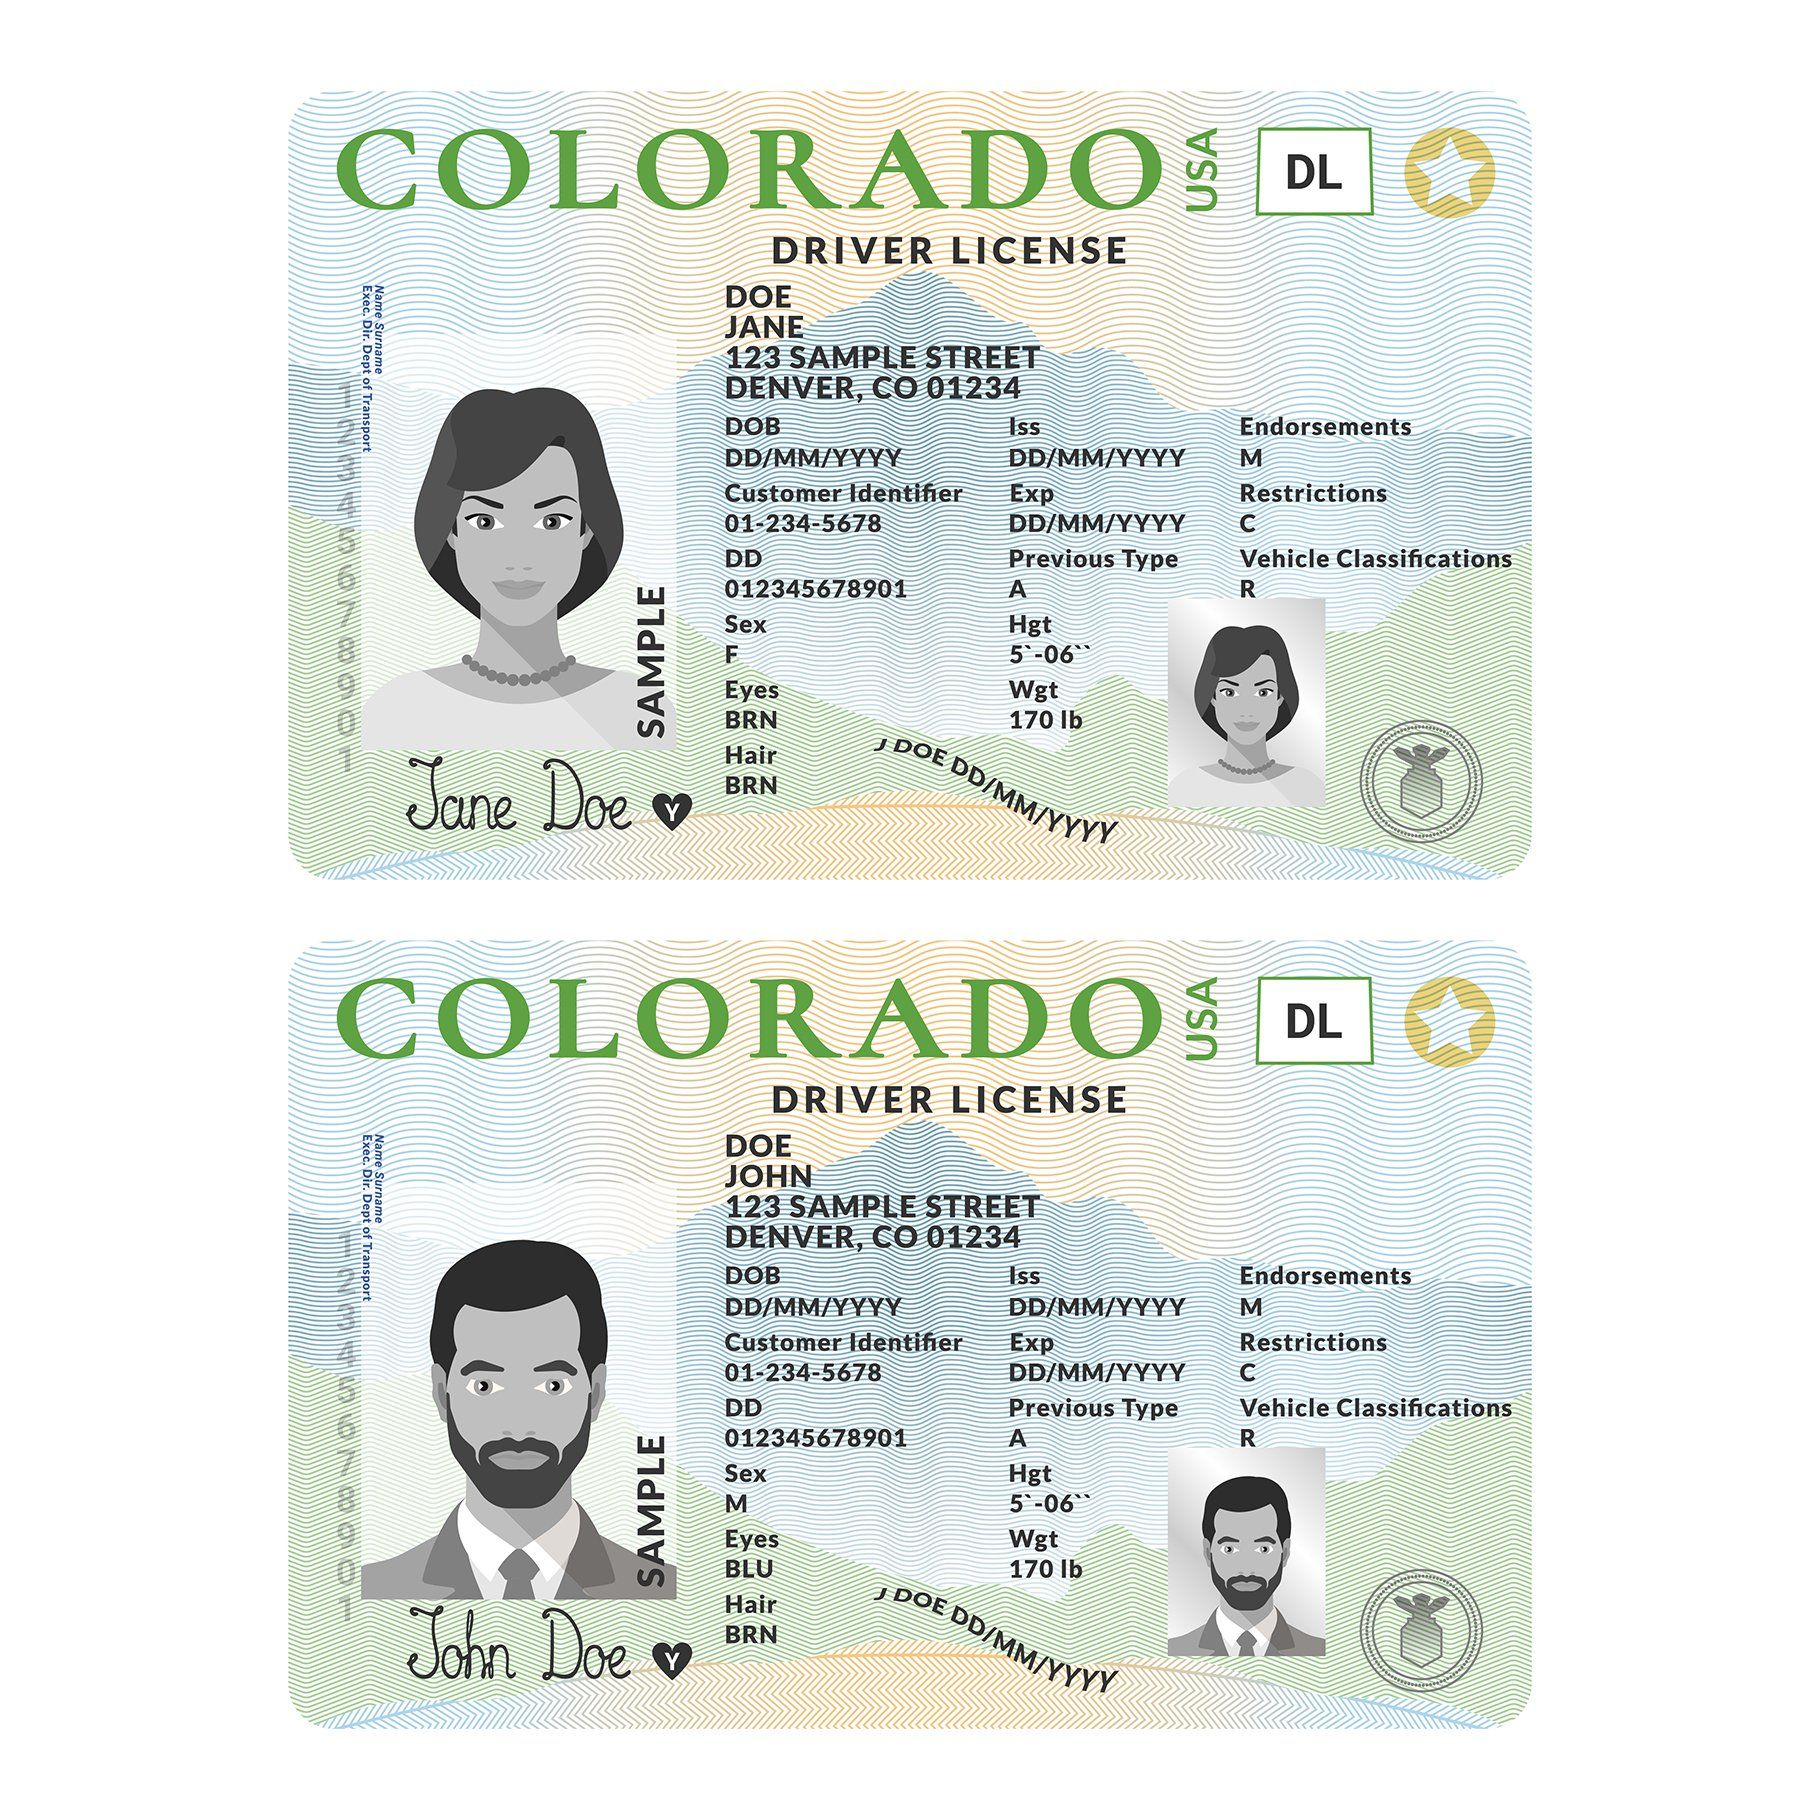 How To Get A Class B License In Colorado